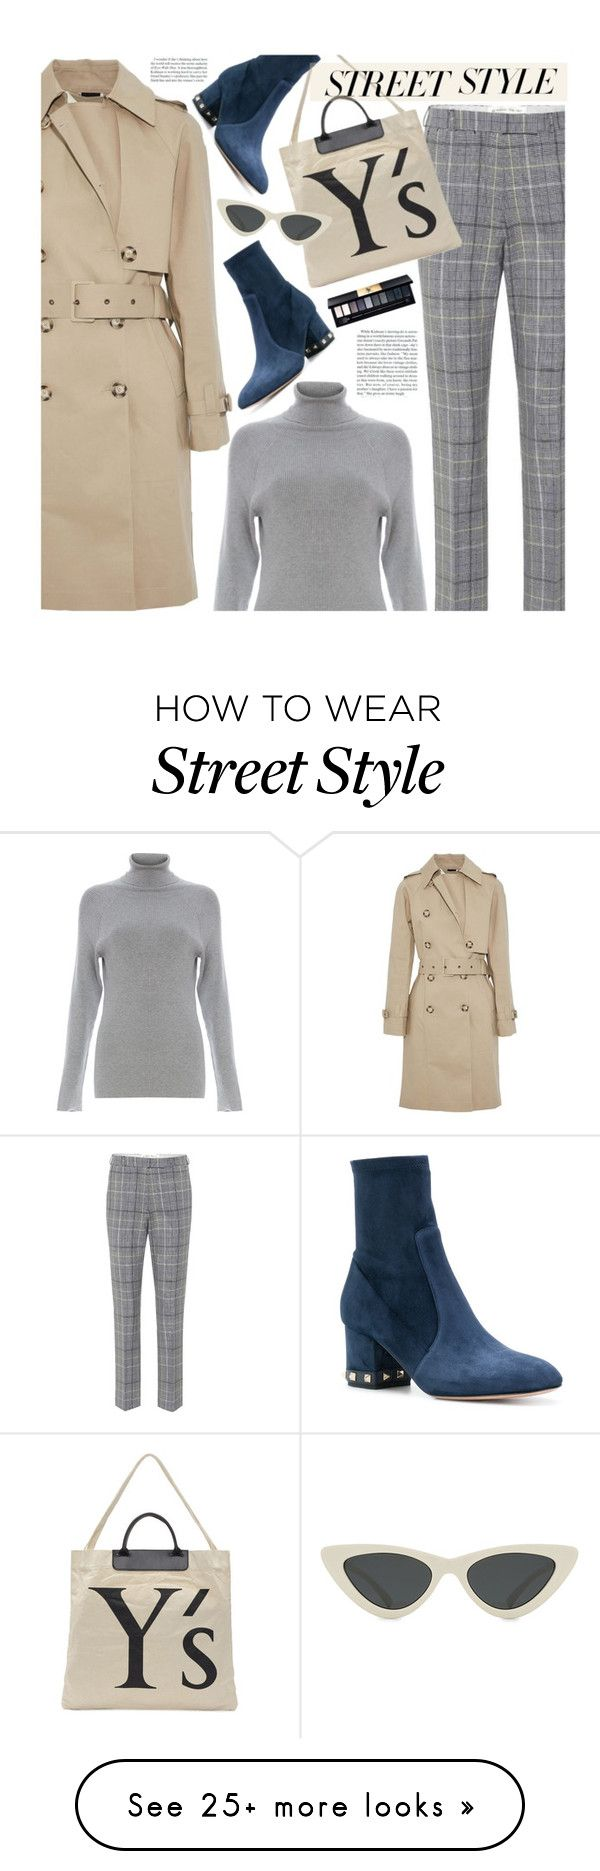 """Street Style: Plaid Pants"" by beebeely-look on Polyvore featuring STELLA McCARTNEY, Etro, 525 America, Y's by Yohji Yamamoto, Le Specs, Valentino, Yves Saint Laurent, StreetStyle, NYFW and plaid"